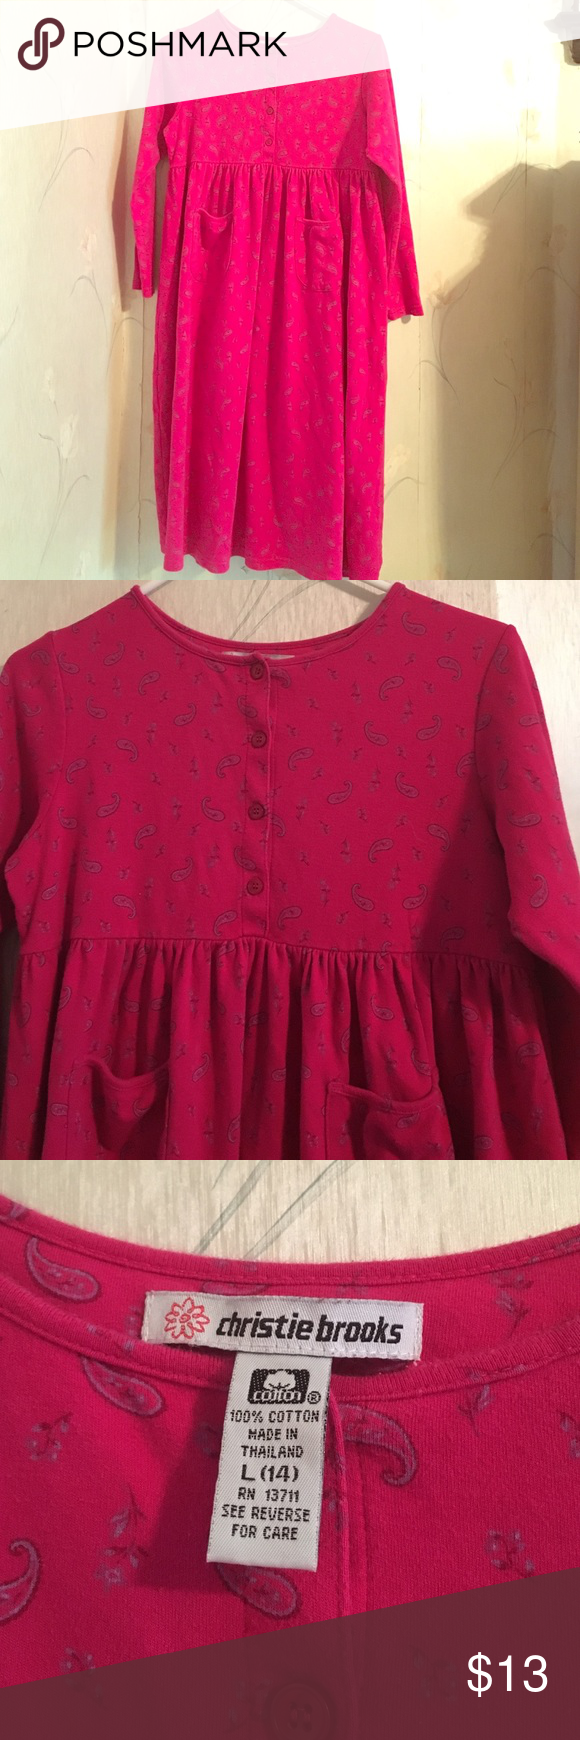 Girls cotton long sleeved maxi dress adorable hot pink with blue